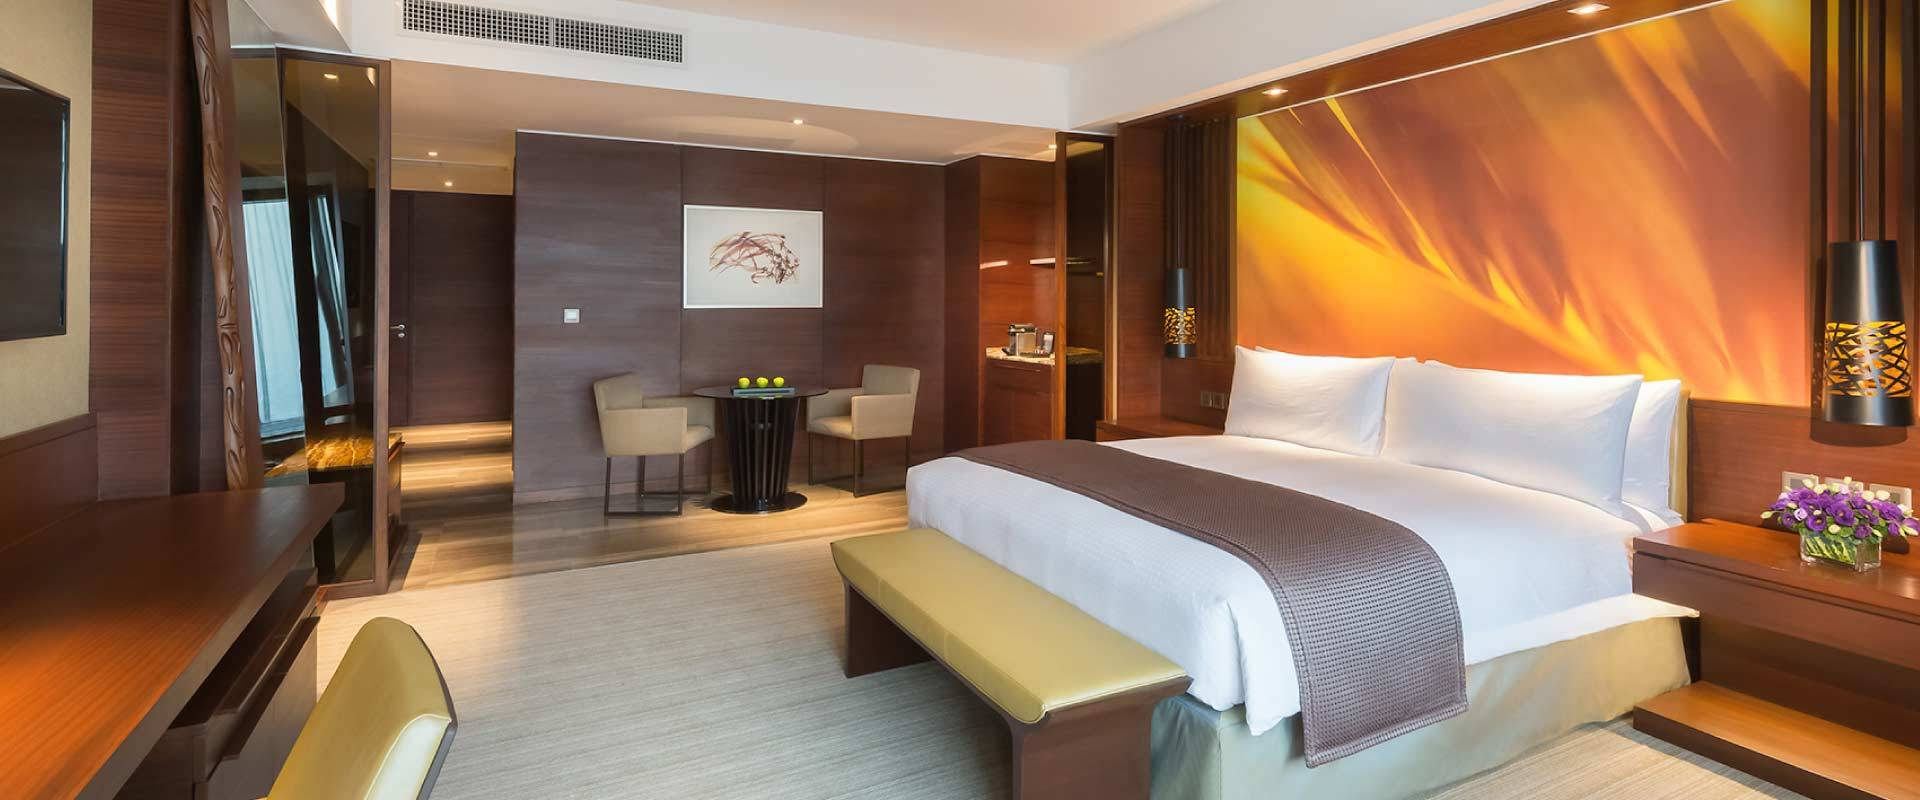 Rooms suites marco polo ortigas manila for Business hotel design